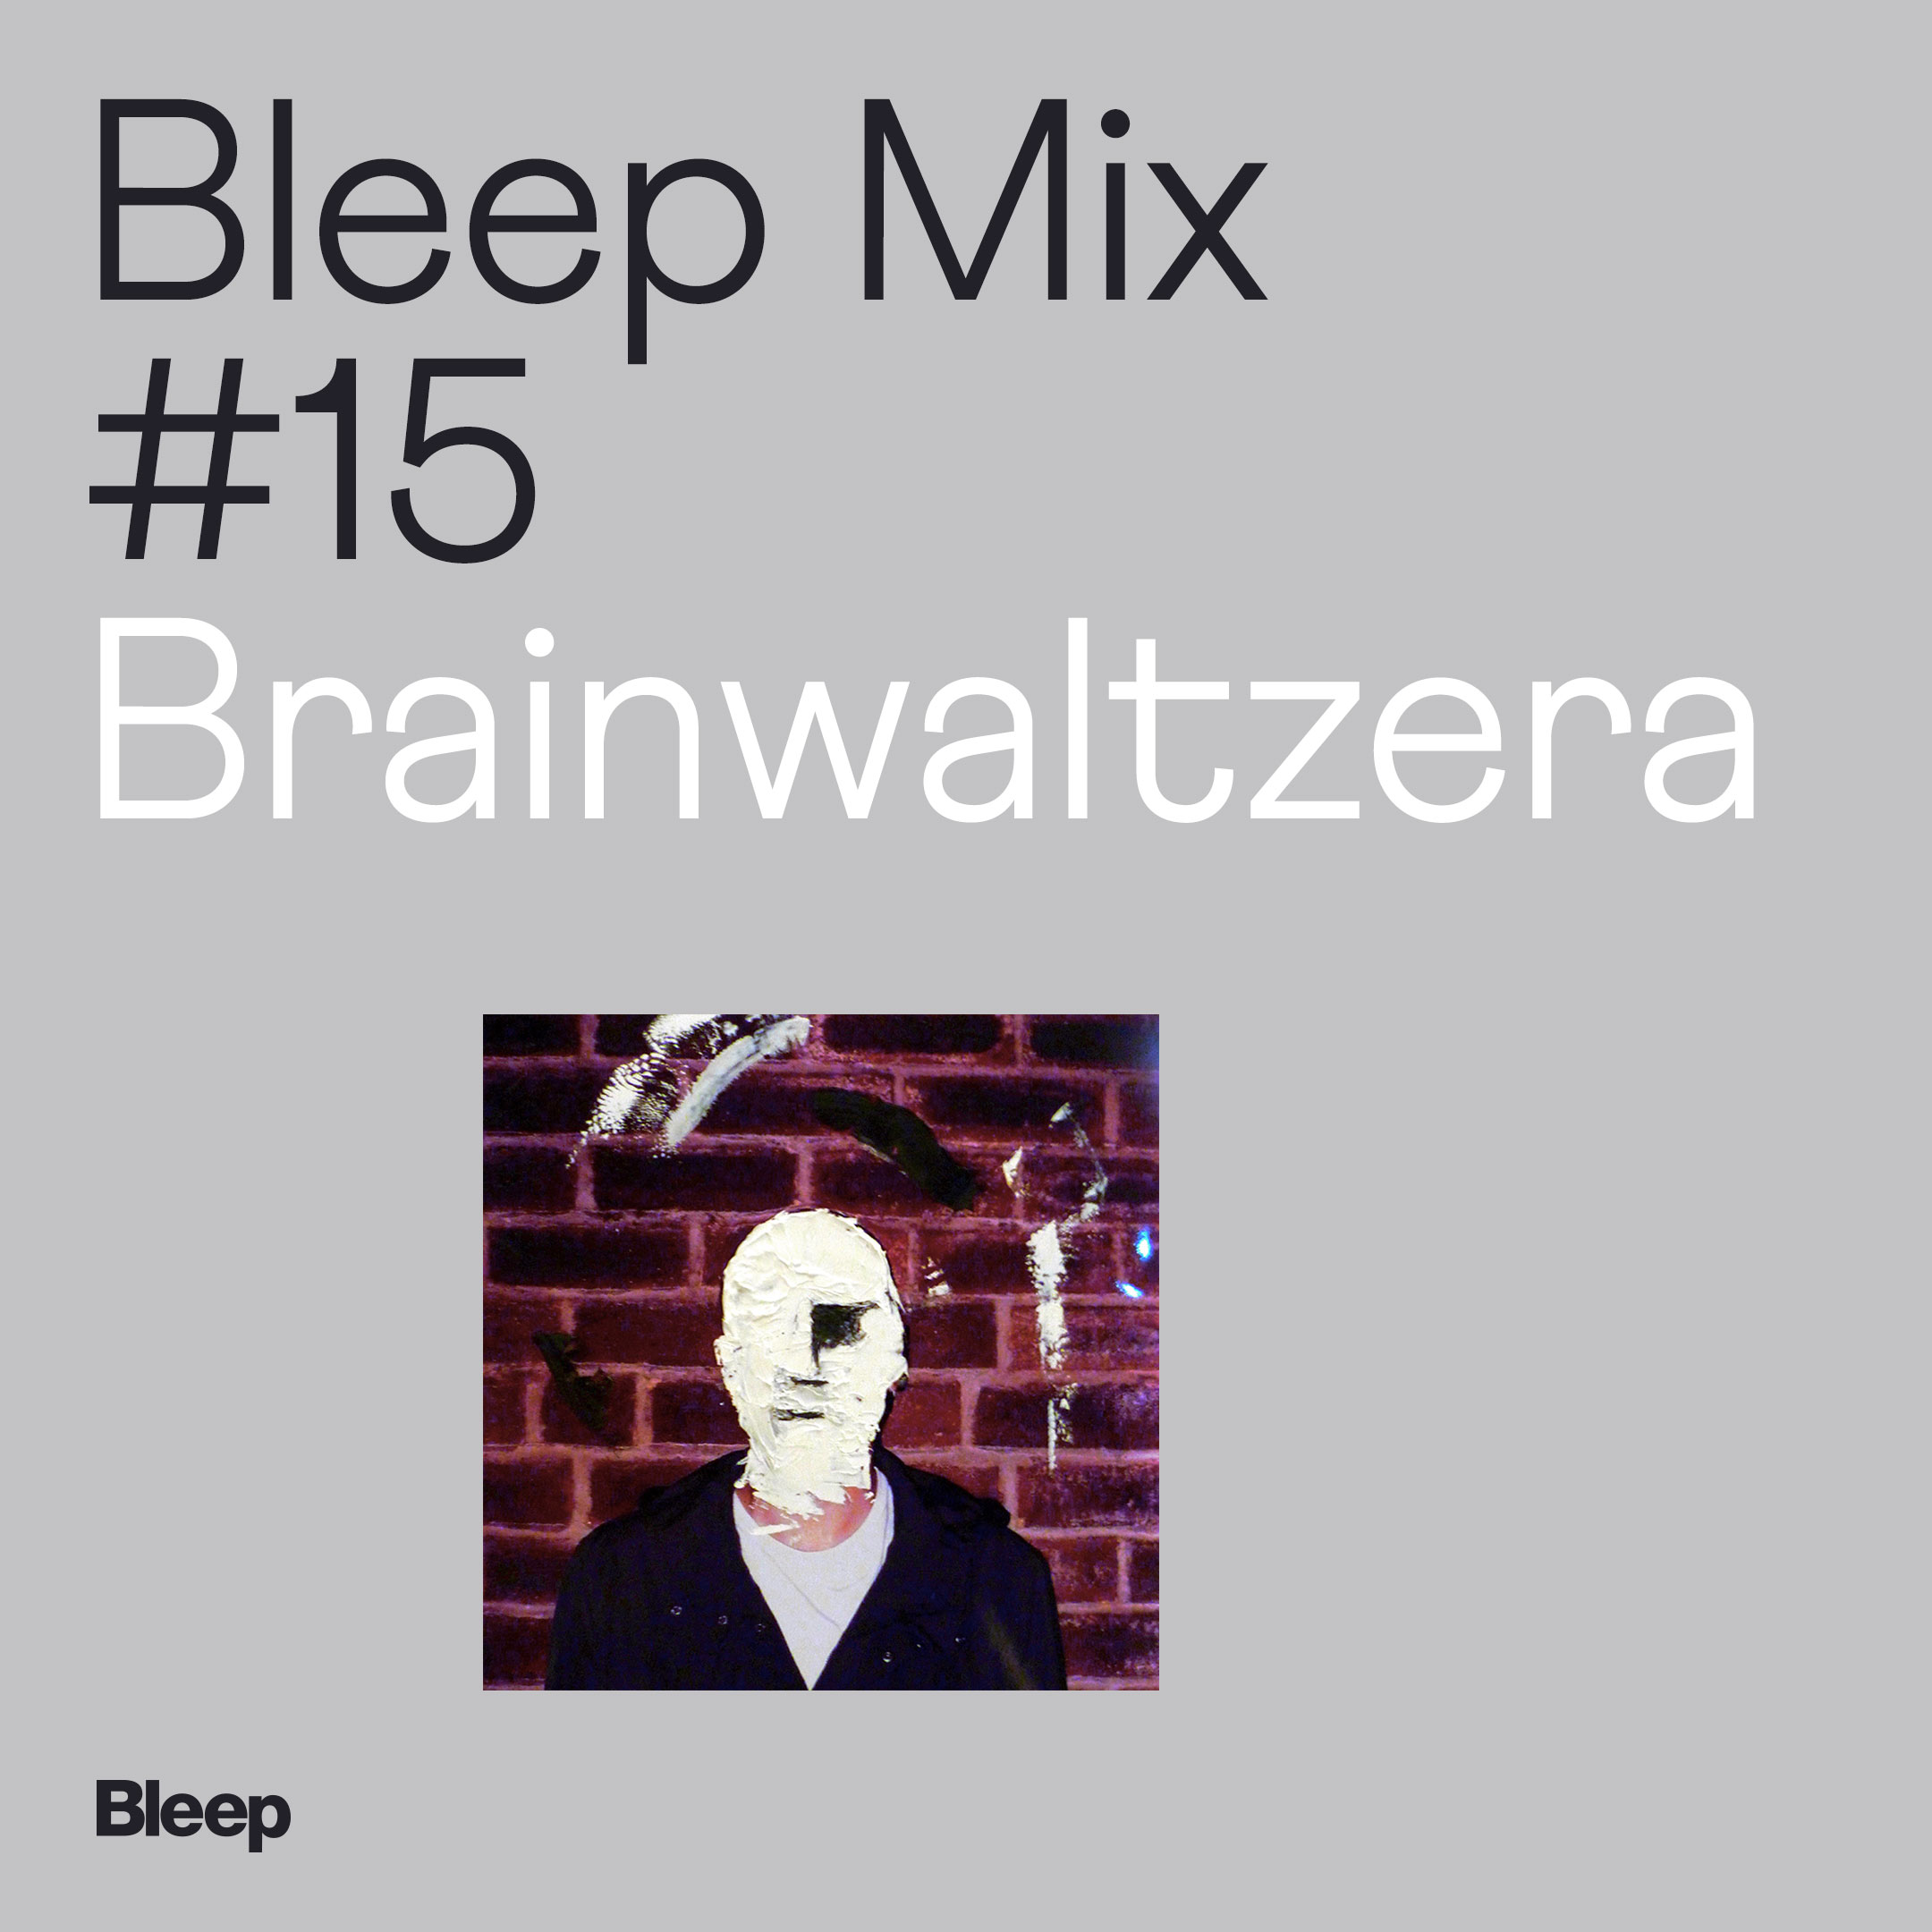 Bleep Mix #15 - Brainwaltzera